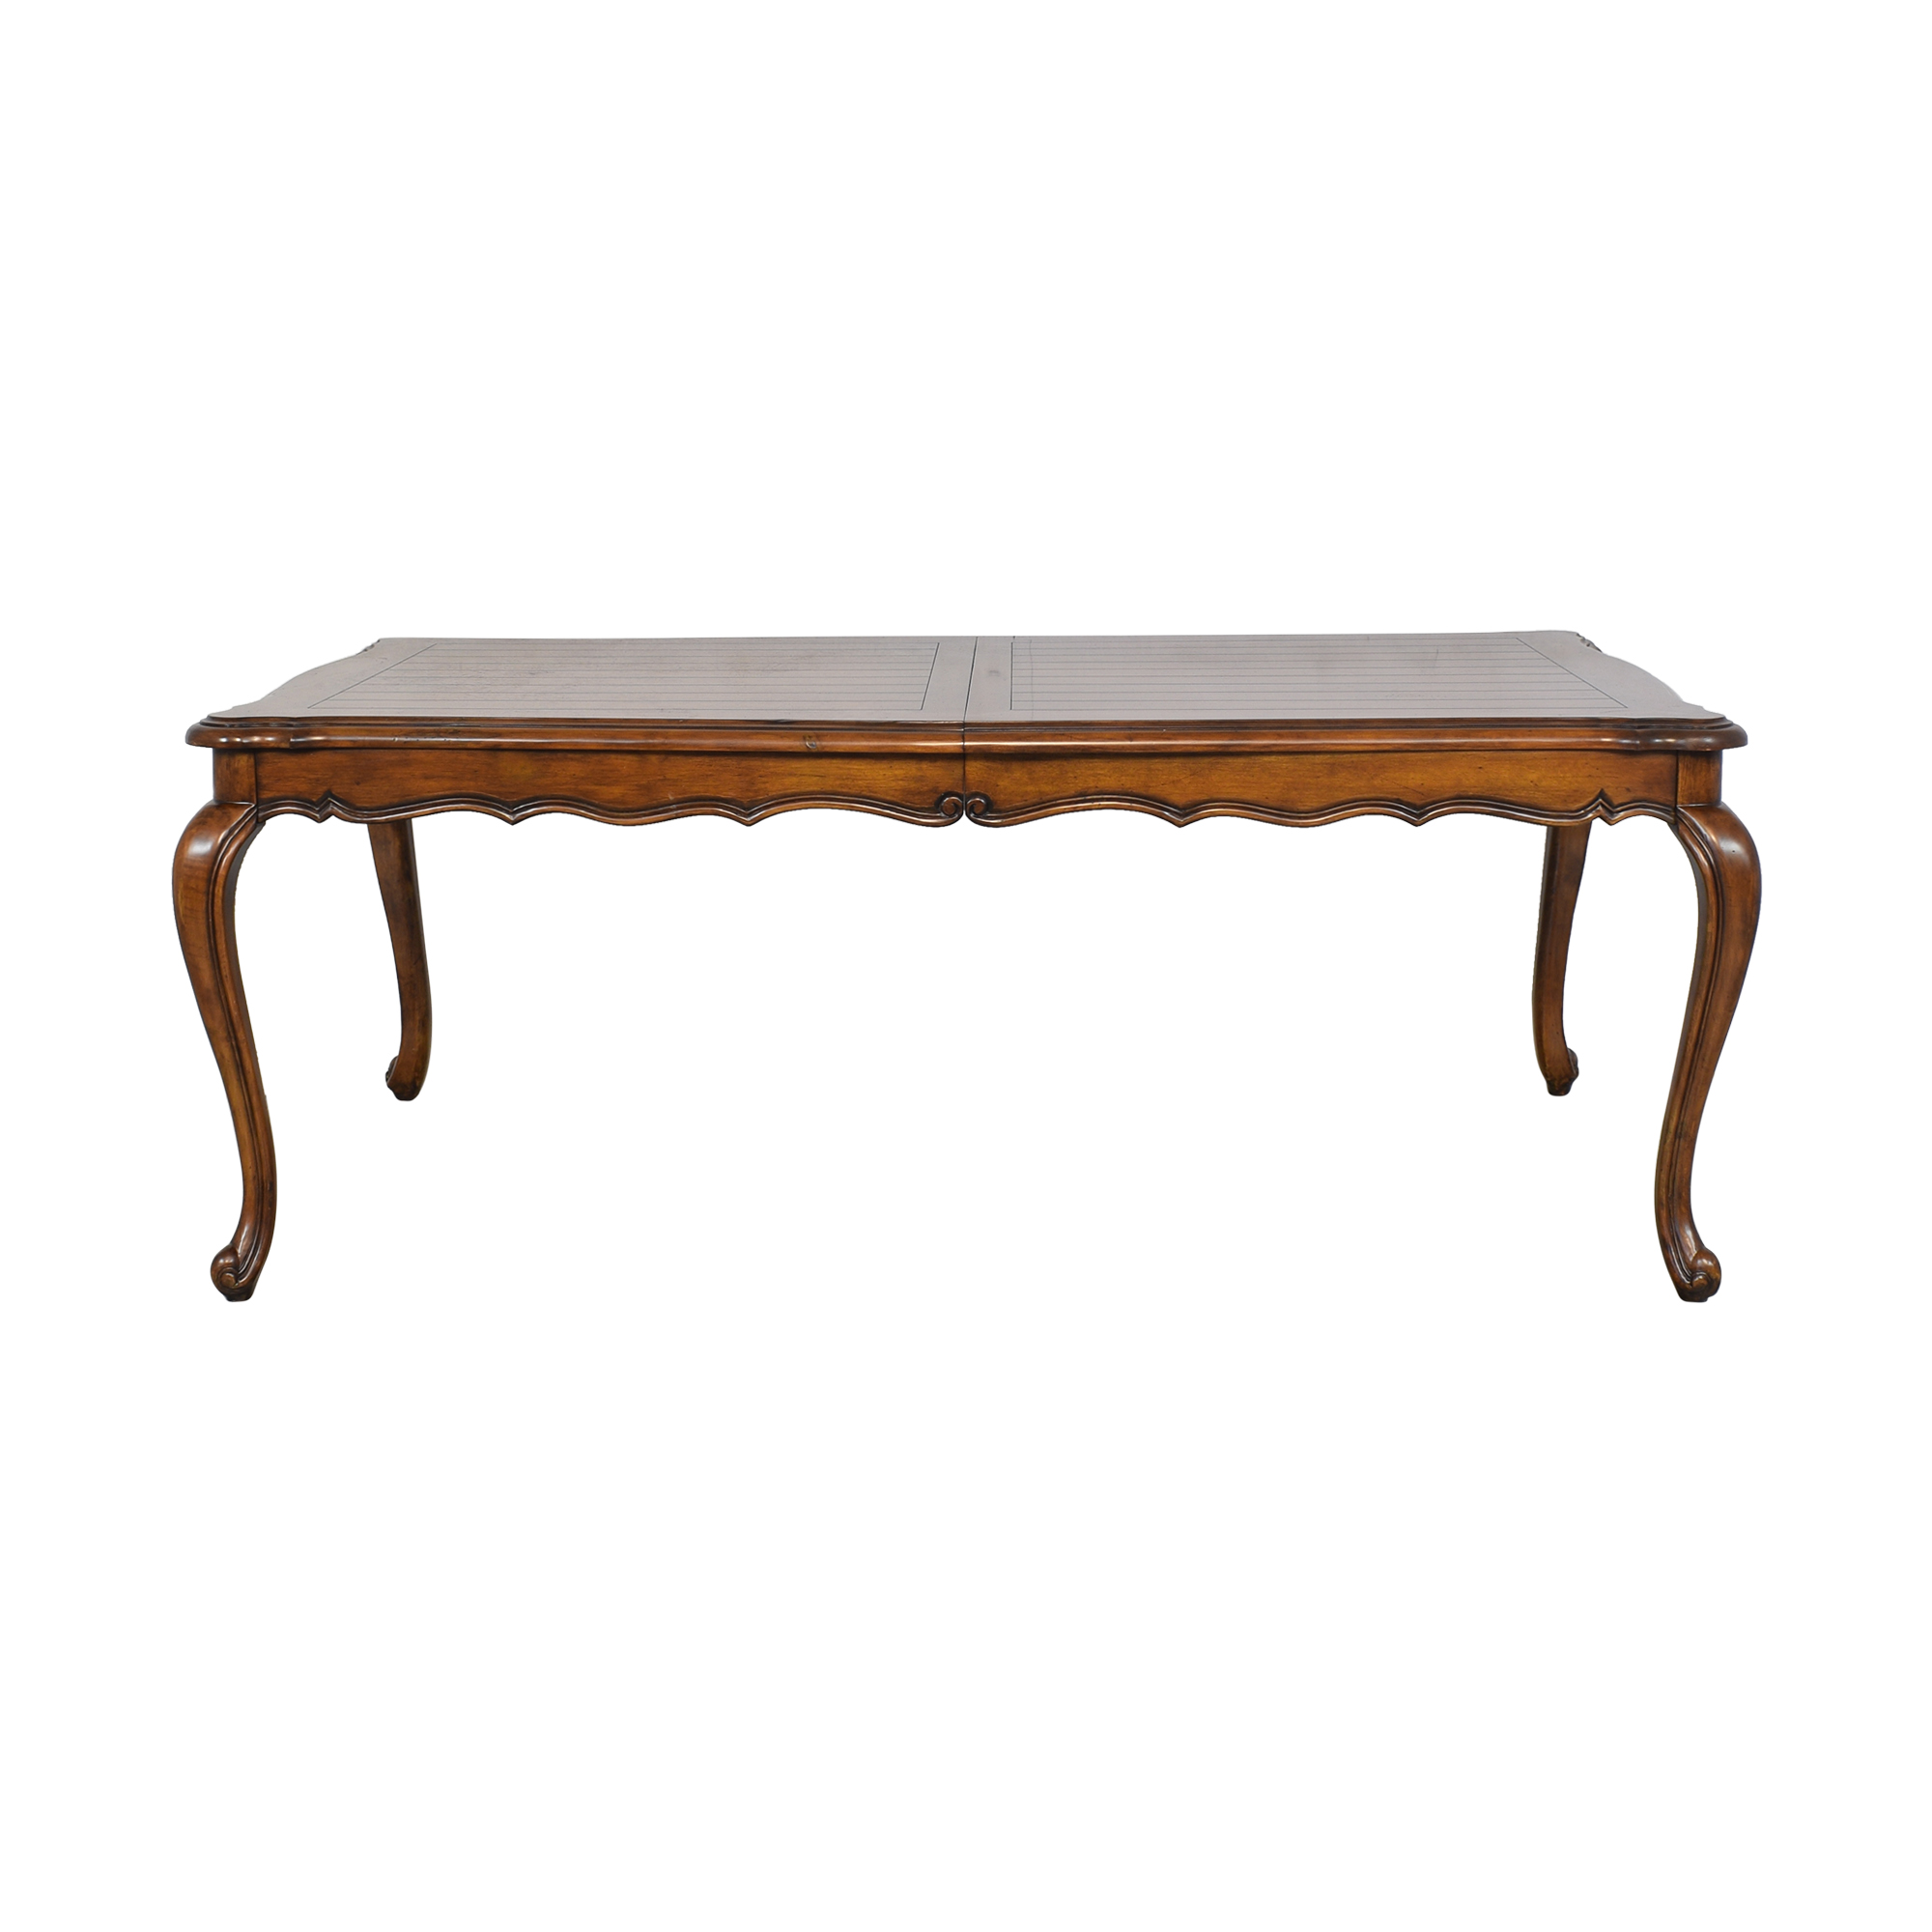 Artistica Artistica Extendable Dining Table ma